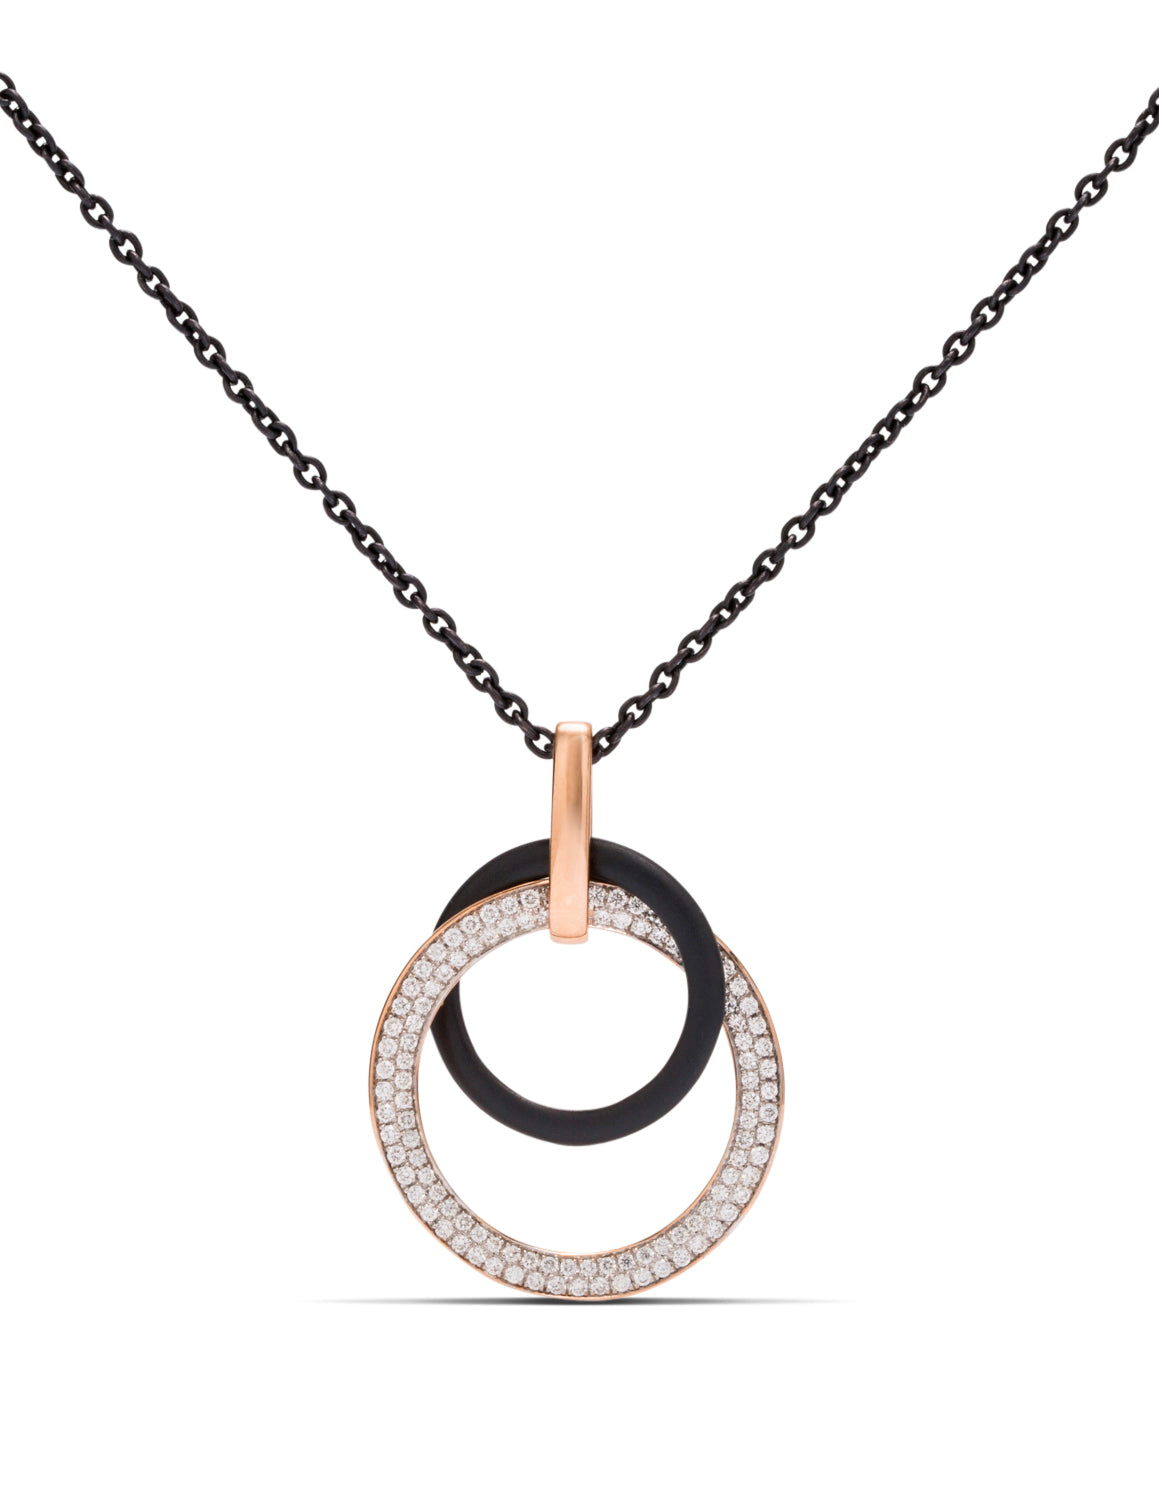 Blackened Steel and Rose Gold Circle Pendant - Charles Koll Jewellers